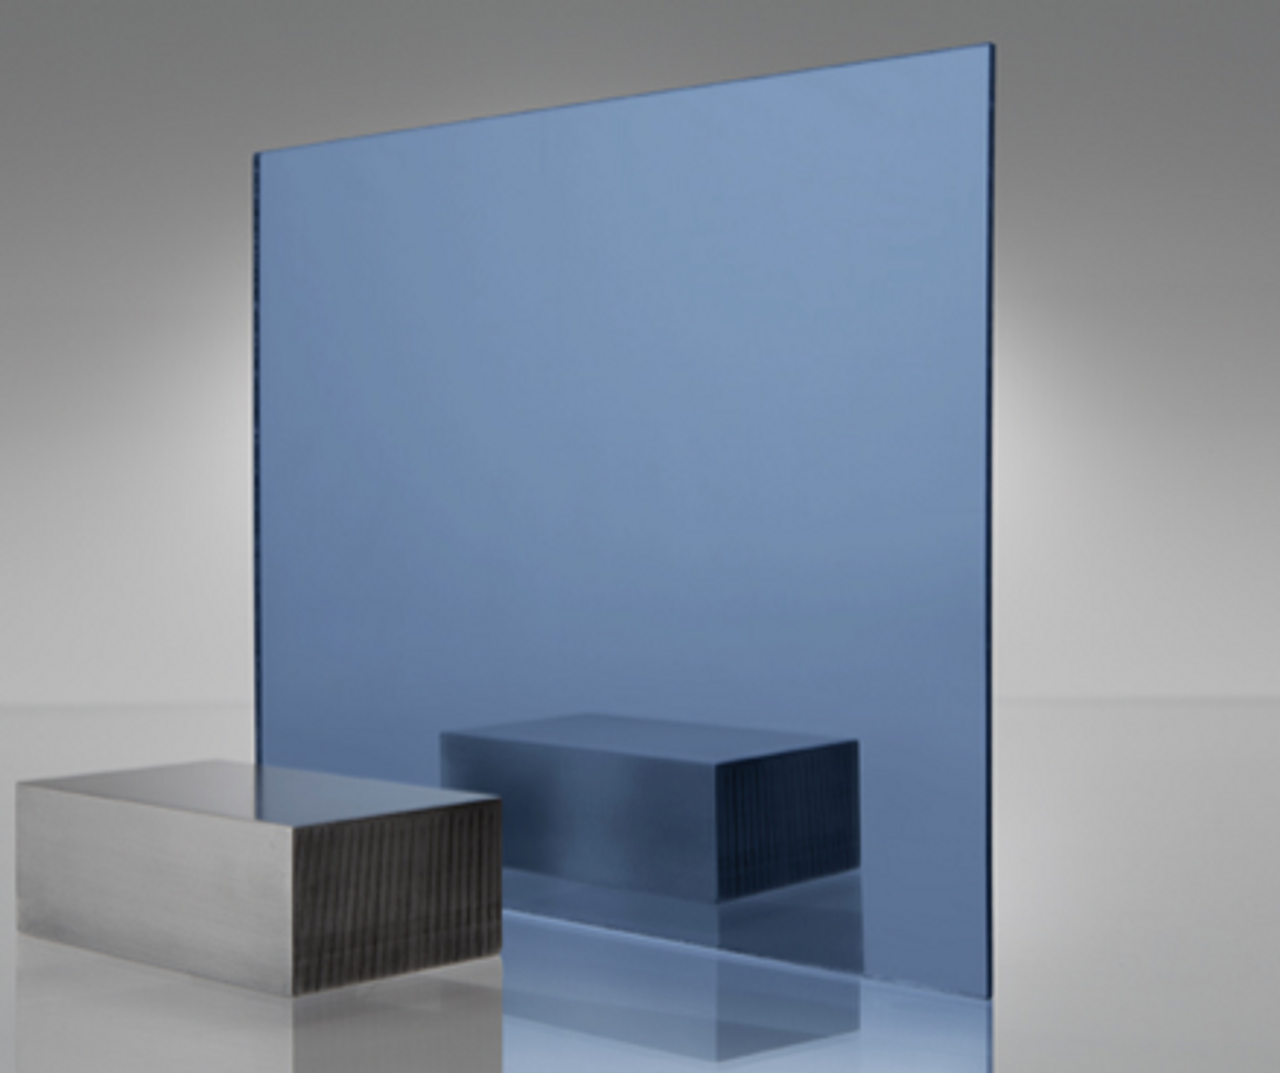 4x8' Mirrored Acrylic BLUE Light